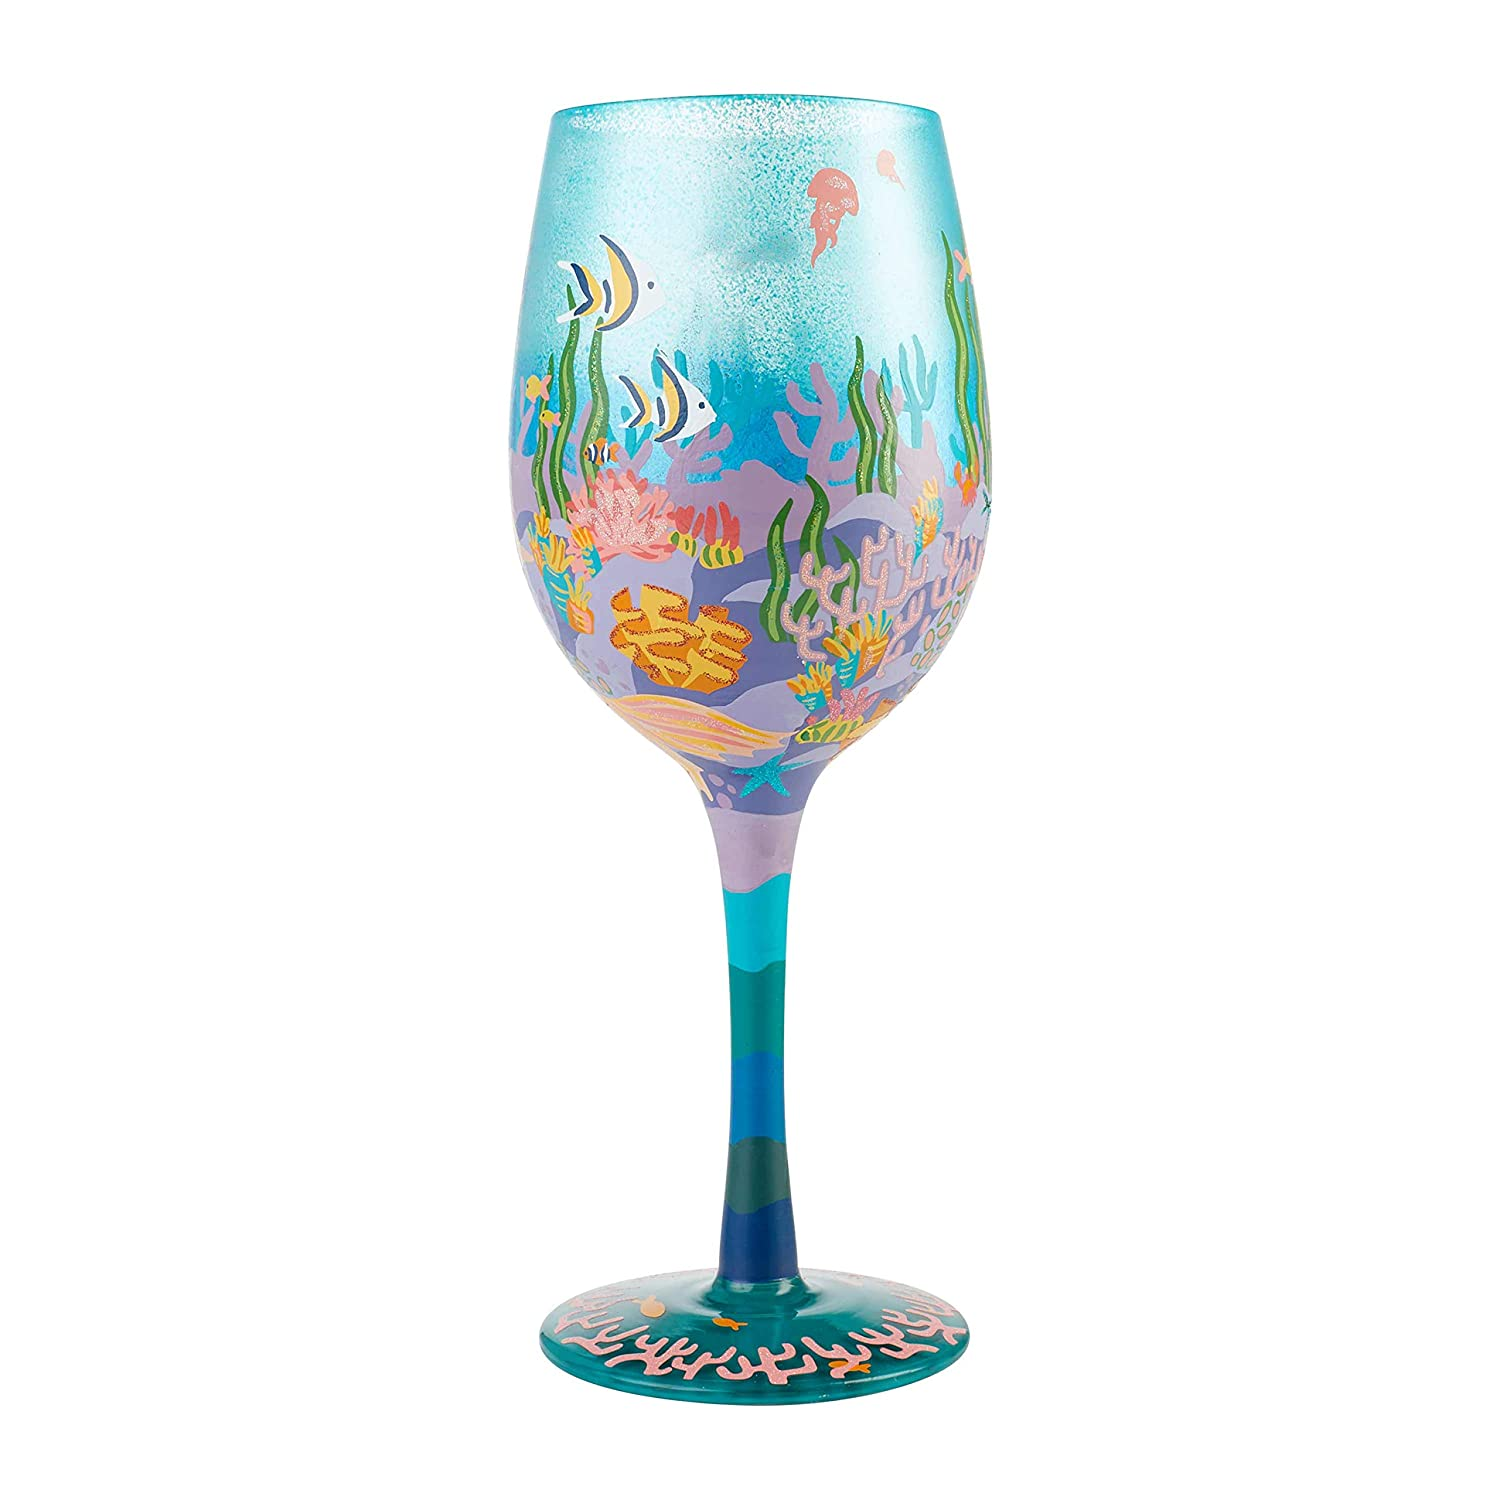 Lolita Miss Mermaid Wine Glass Copa Modelo Sirenita